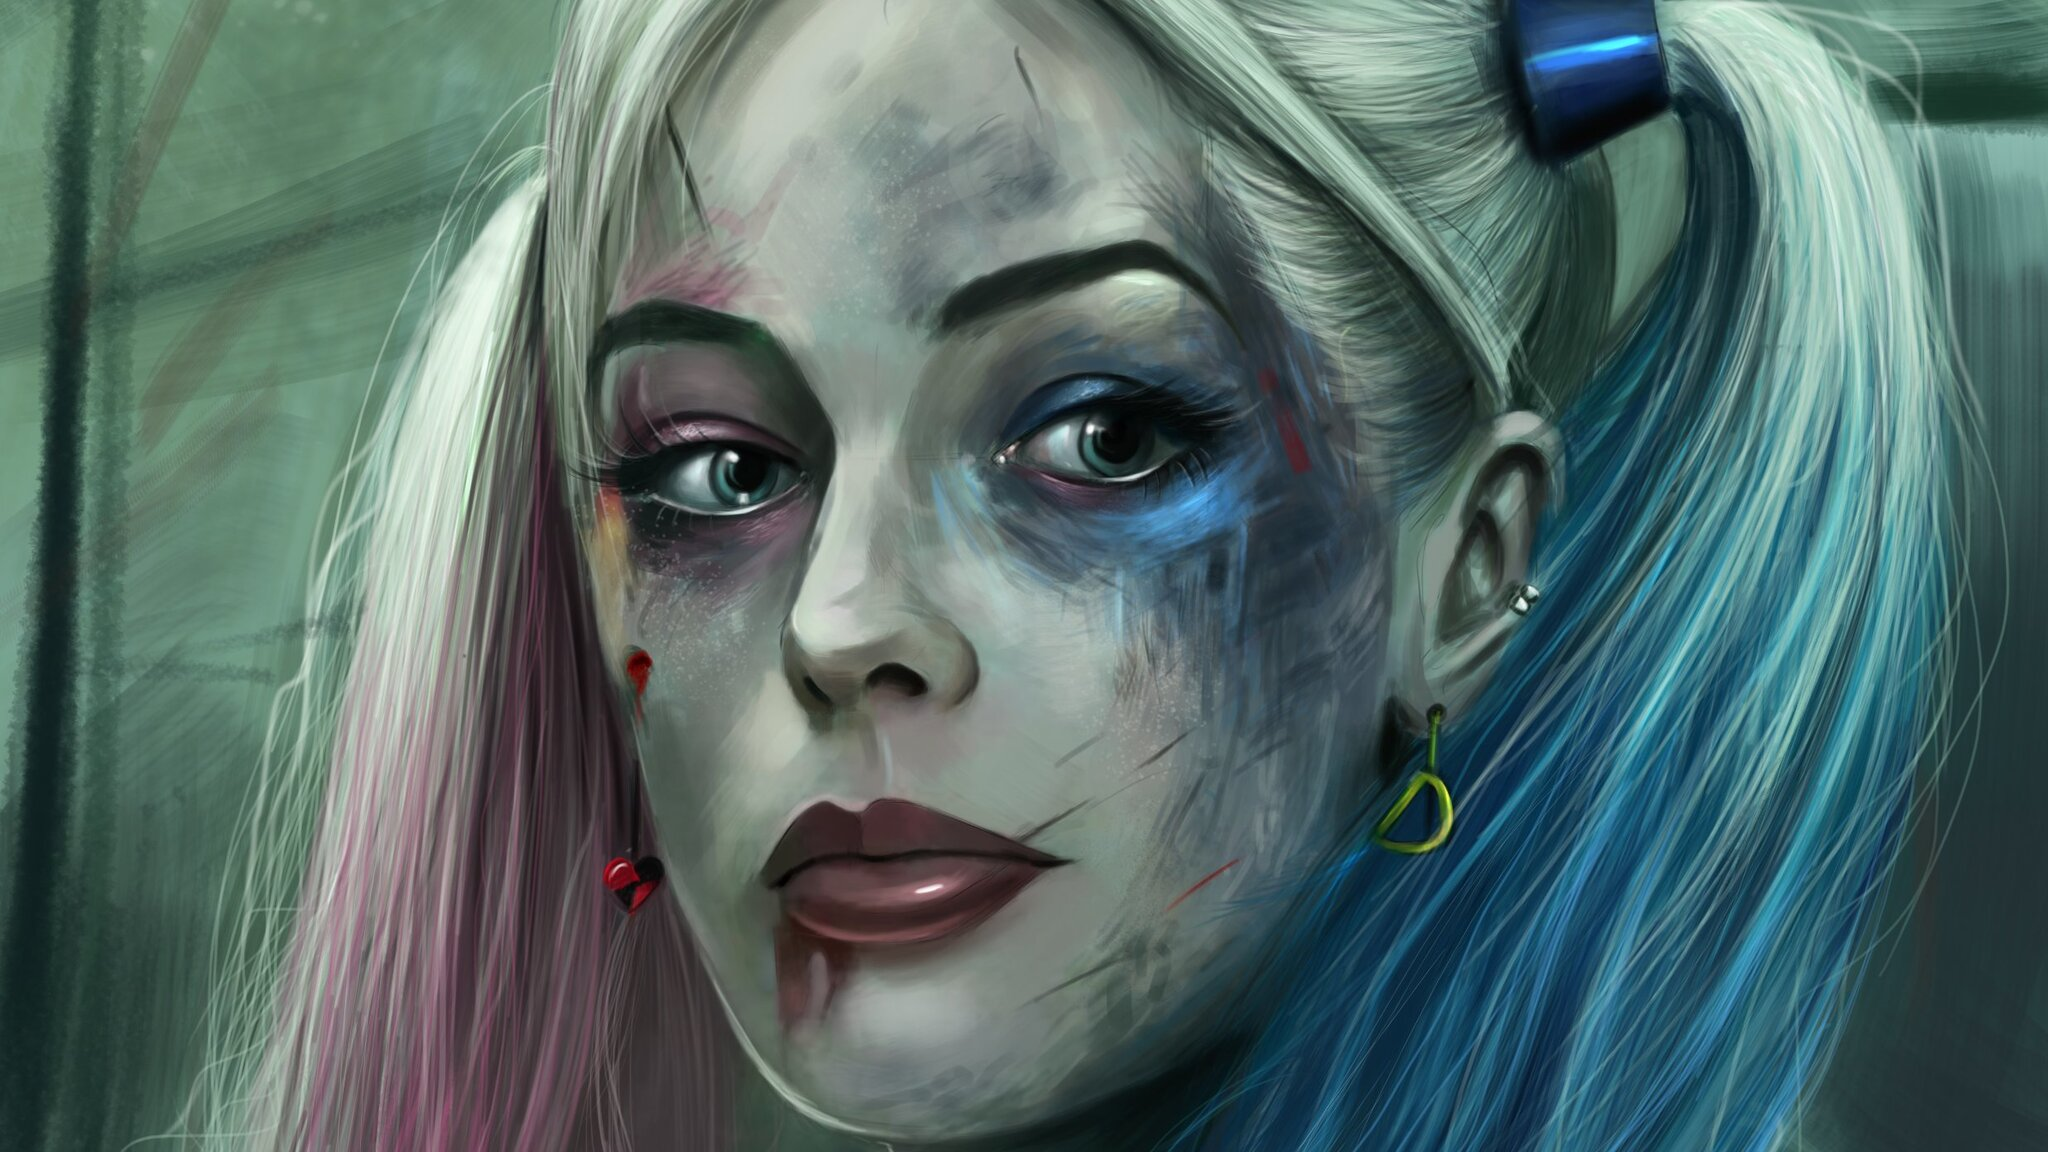 Harley Quinn Wallpaper Suicide Squad: 2048x1152 Harley Quinn In Suicide Squad 2048x1152